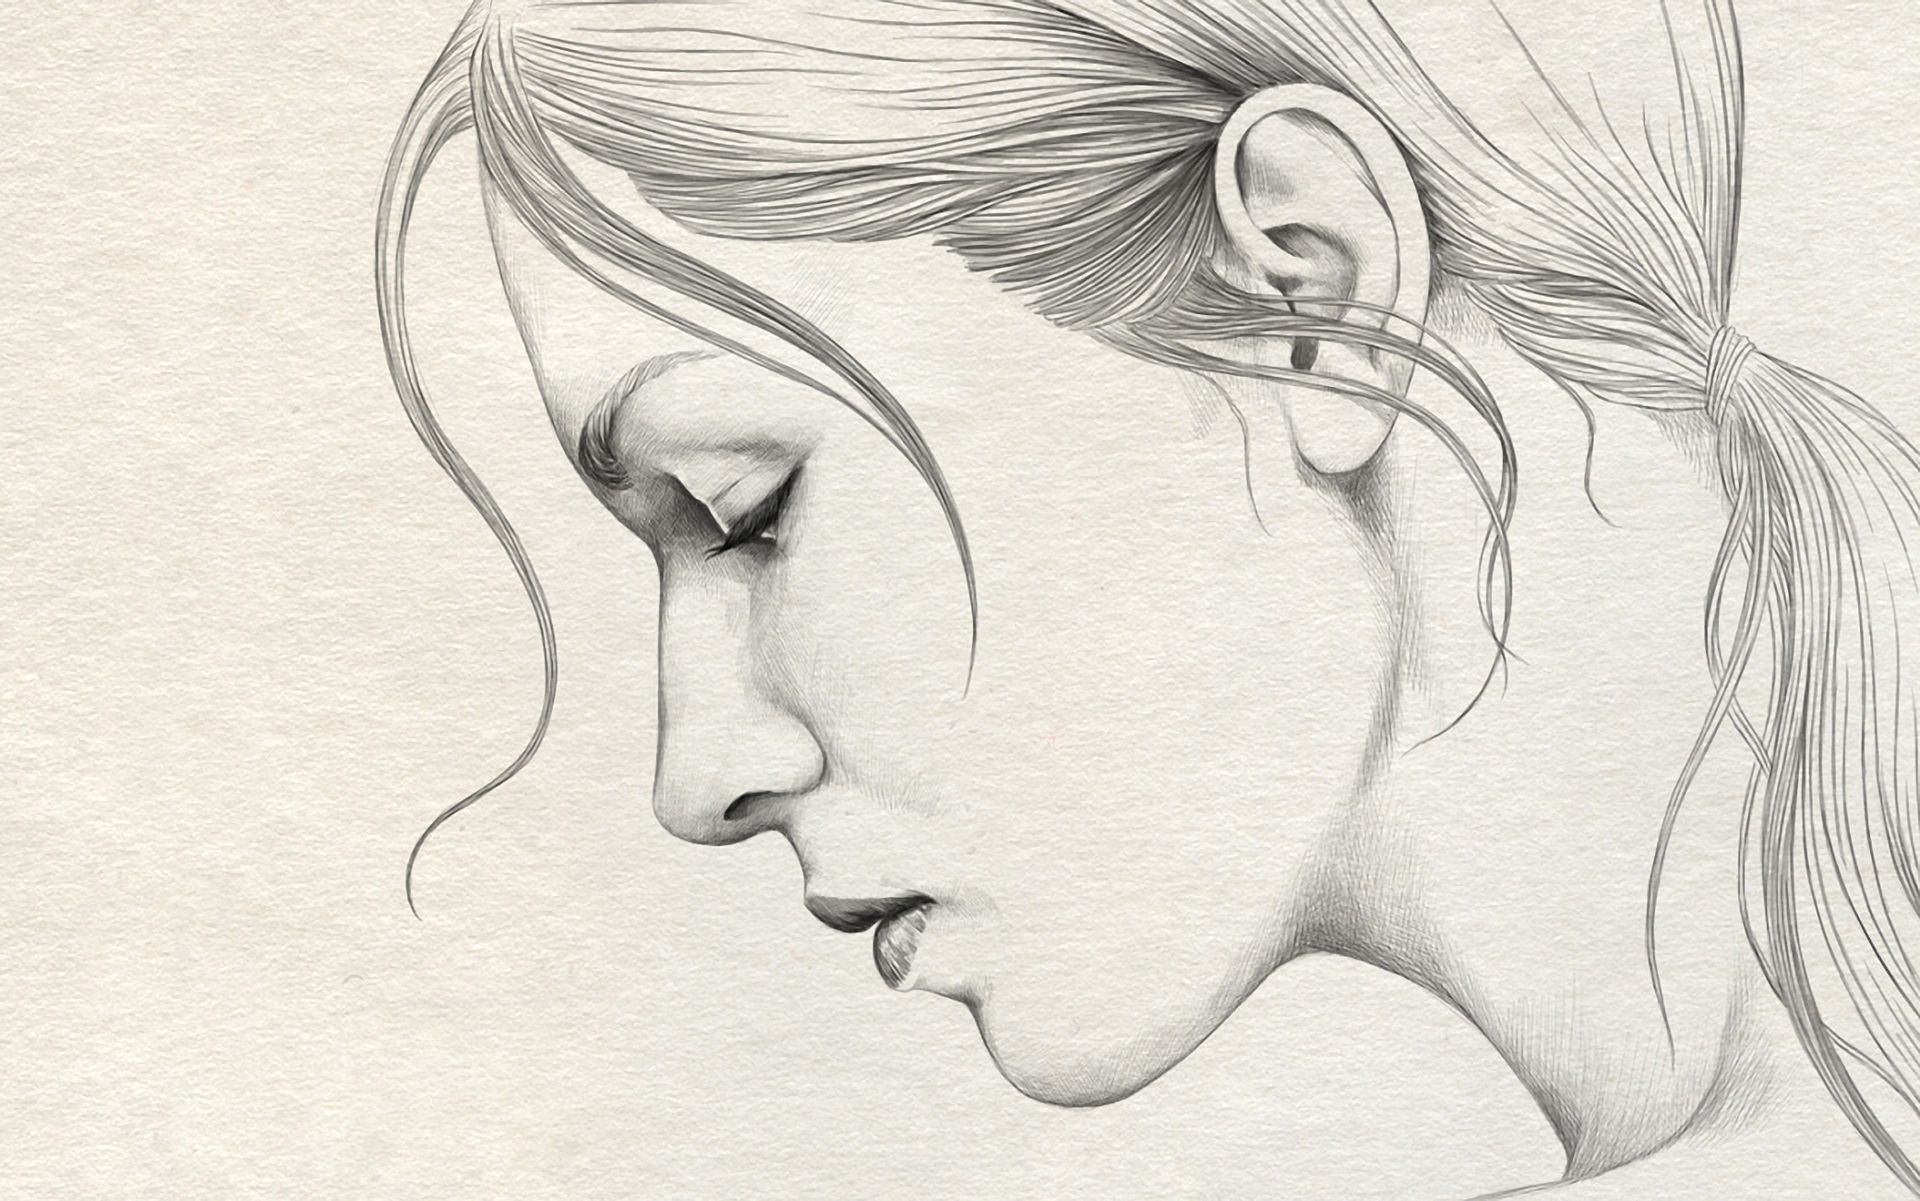 Best Pencil Sketch For Wallpaper